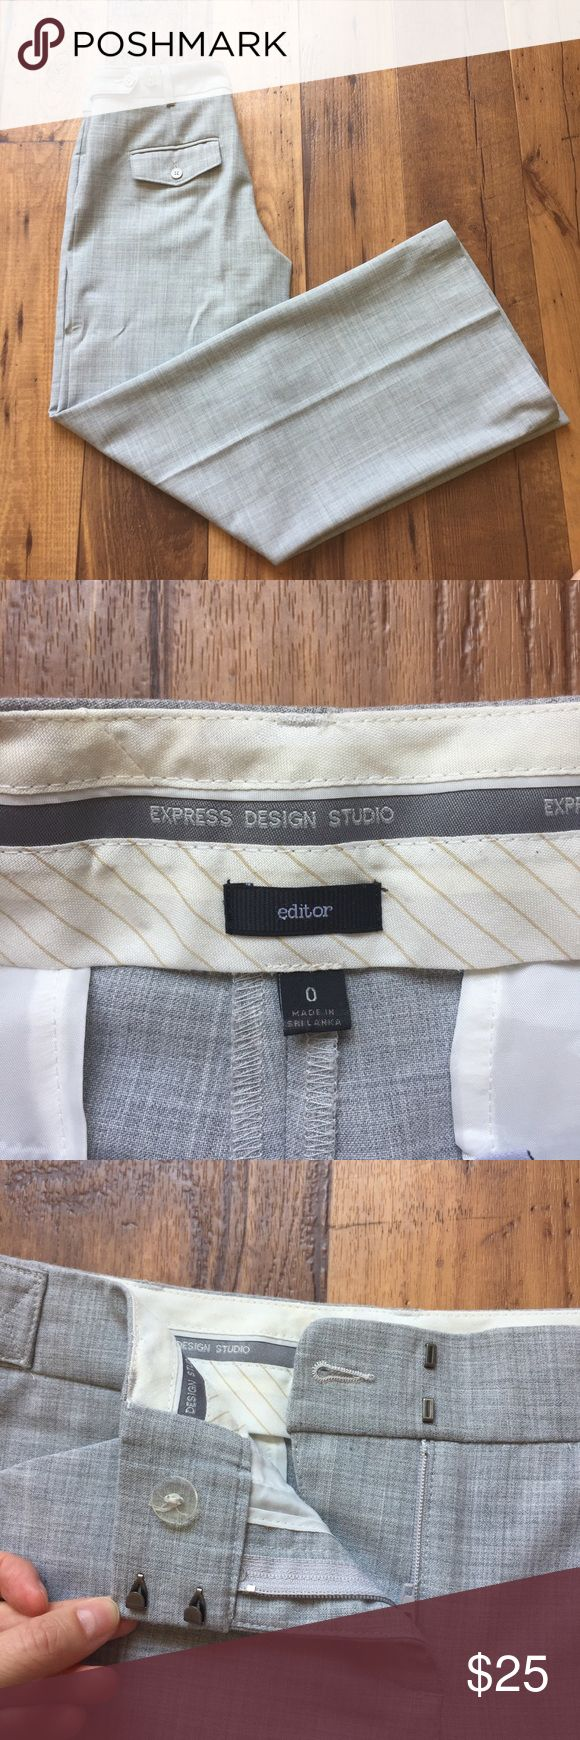 Express Design Studio Editor Style Pants Express Design Studio Trouser in Editor style! These pants are in great condition. Gorgeous gray color with light heathering/plaid coloring. These trousers feature functional pockets, and the leg slightly flares at the bottom giving a flattering shape. Hem can be one additional inch longer (shown in picture) to accommodate length if needed, just iron the hem where you want the leg length to be 😊 All buttons are intact! Express Pants Trousers